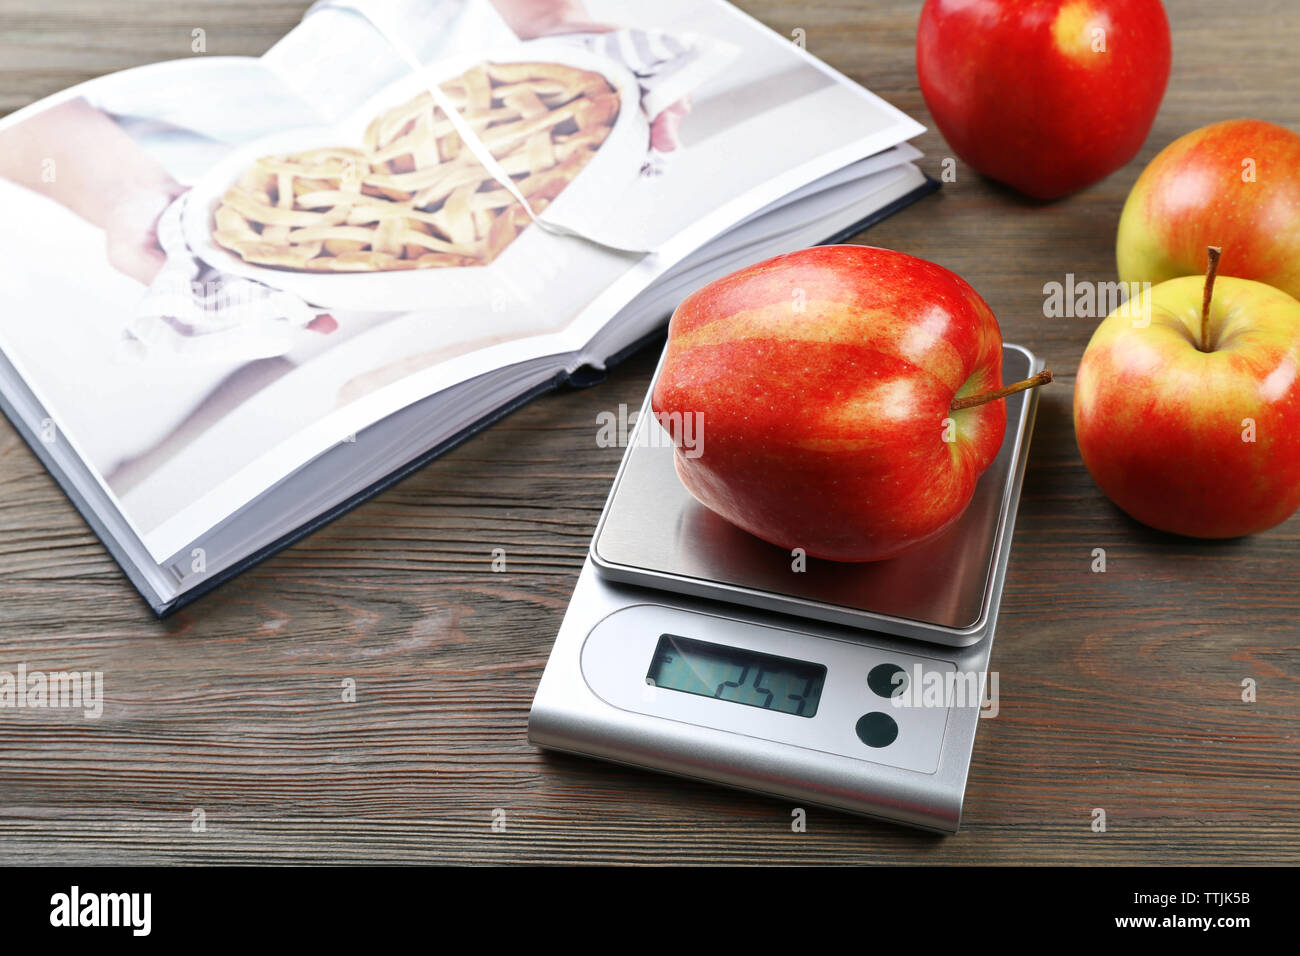 Apples with digital kitchen scales on wooden table. Cooking apple cake concept - Stock Image